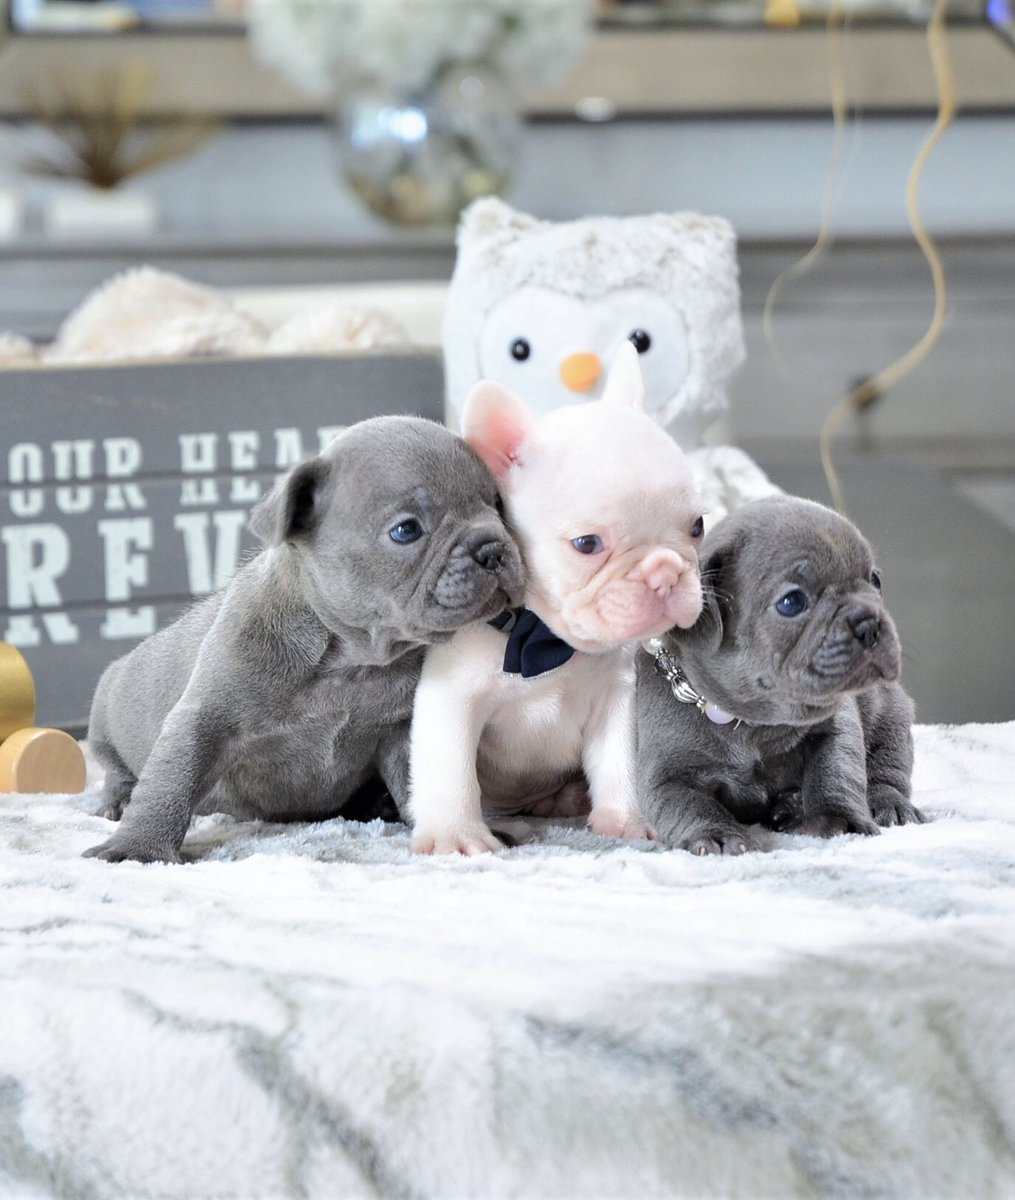 """Life is better with Frenchies""  Visit us at  http://www.PoeticFrenchBulldogs.com  . . . . . #frenchbulldog #frenchbulldogpuppies #frenchbulldogs #frenchbulldogsofinstagram #frenchiestagram #dog #frenchies #cutest #dogsofinstagram #pups #pupsofinstagram #puppylove #puppies #bulldogpic.twitter.com/lkI2BC7qeb"